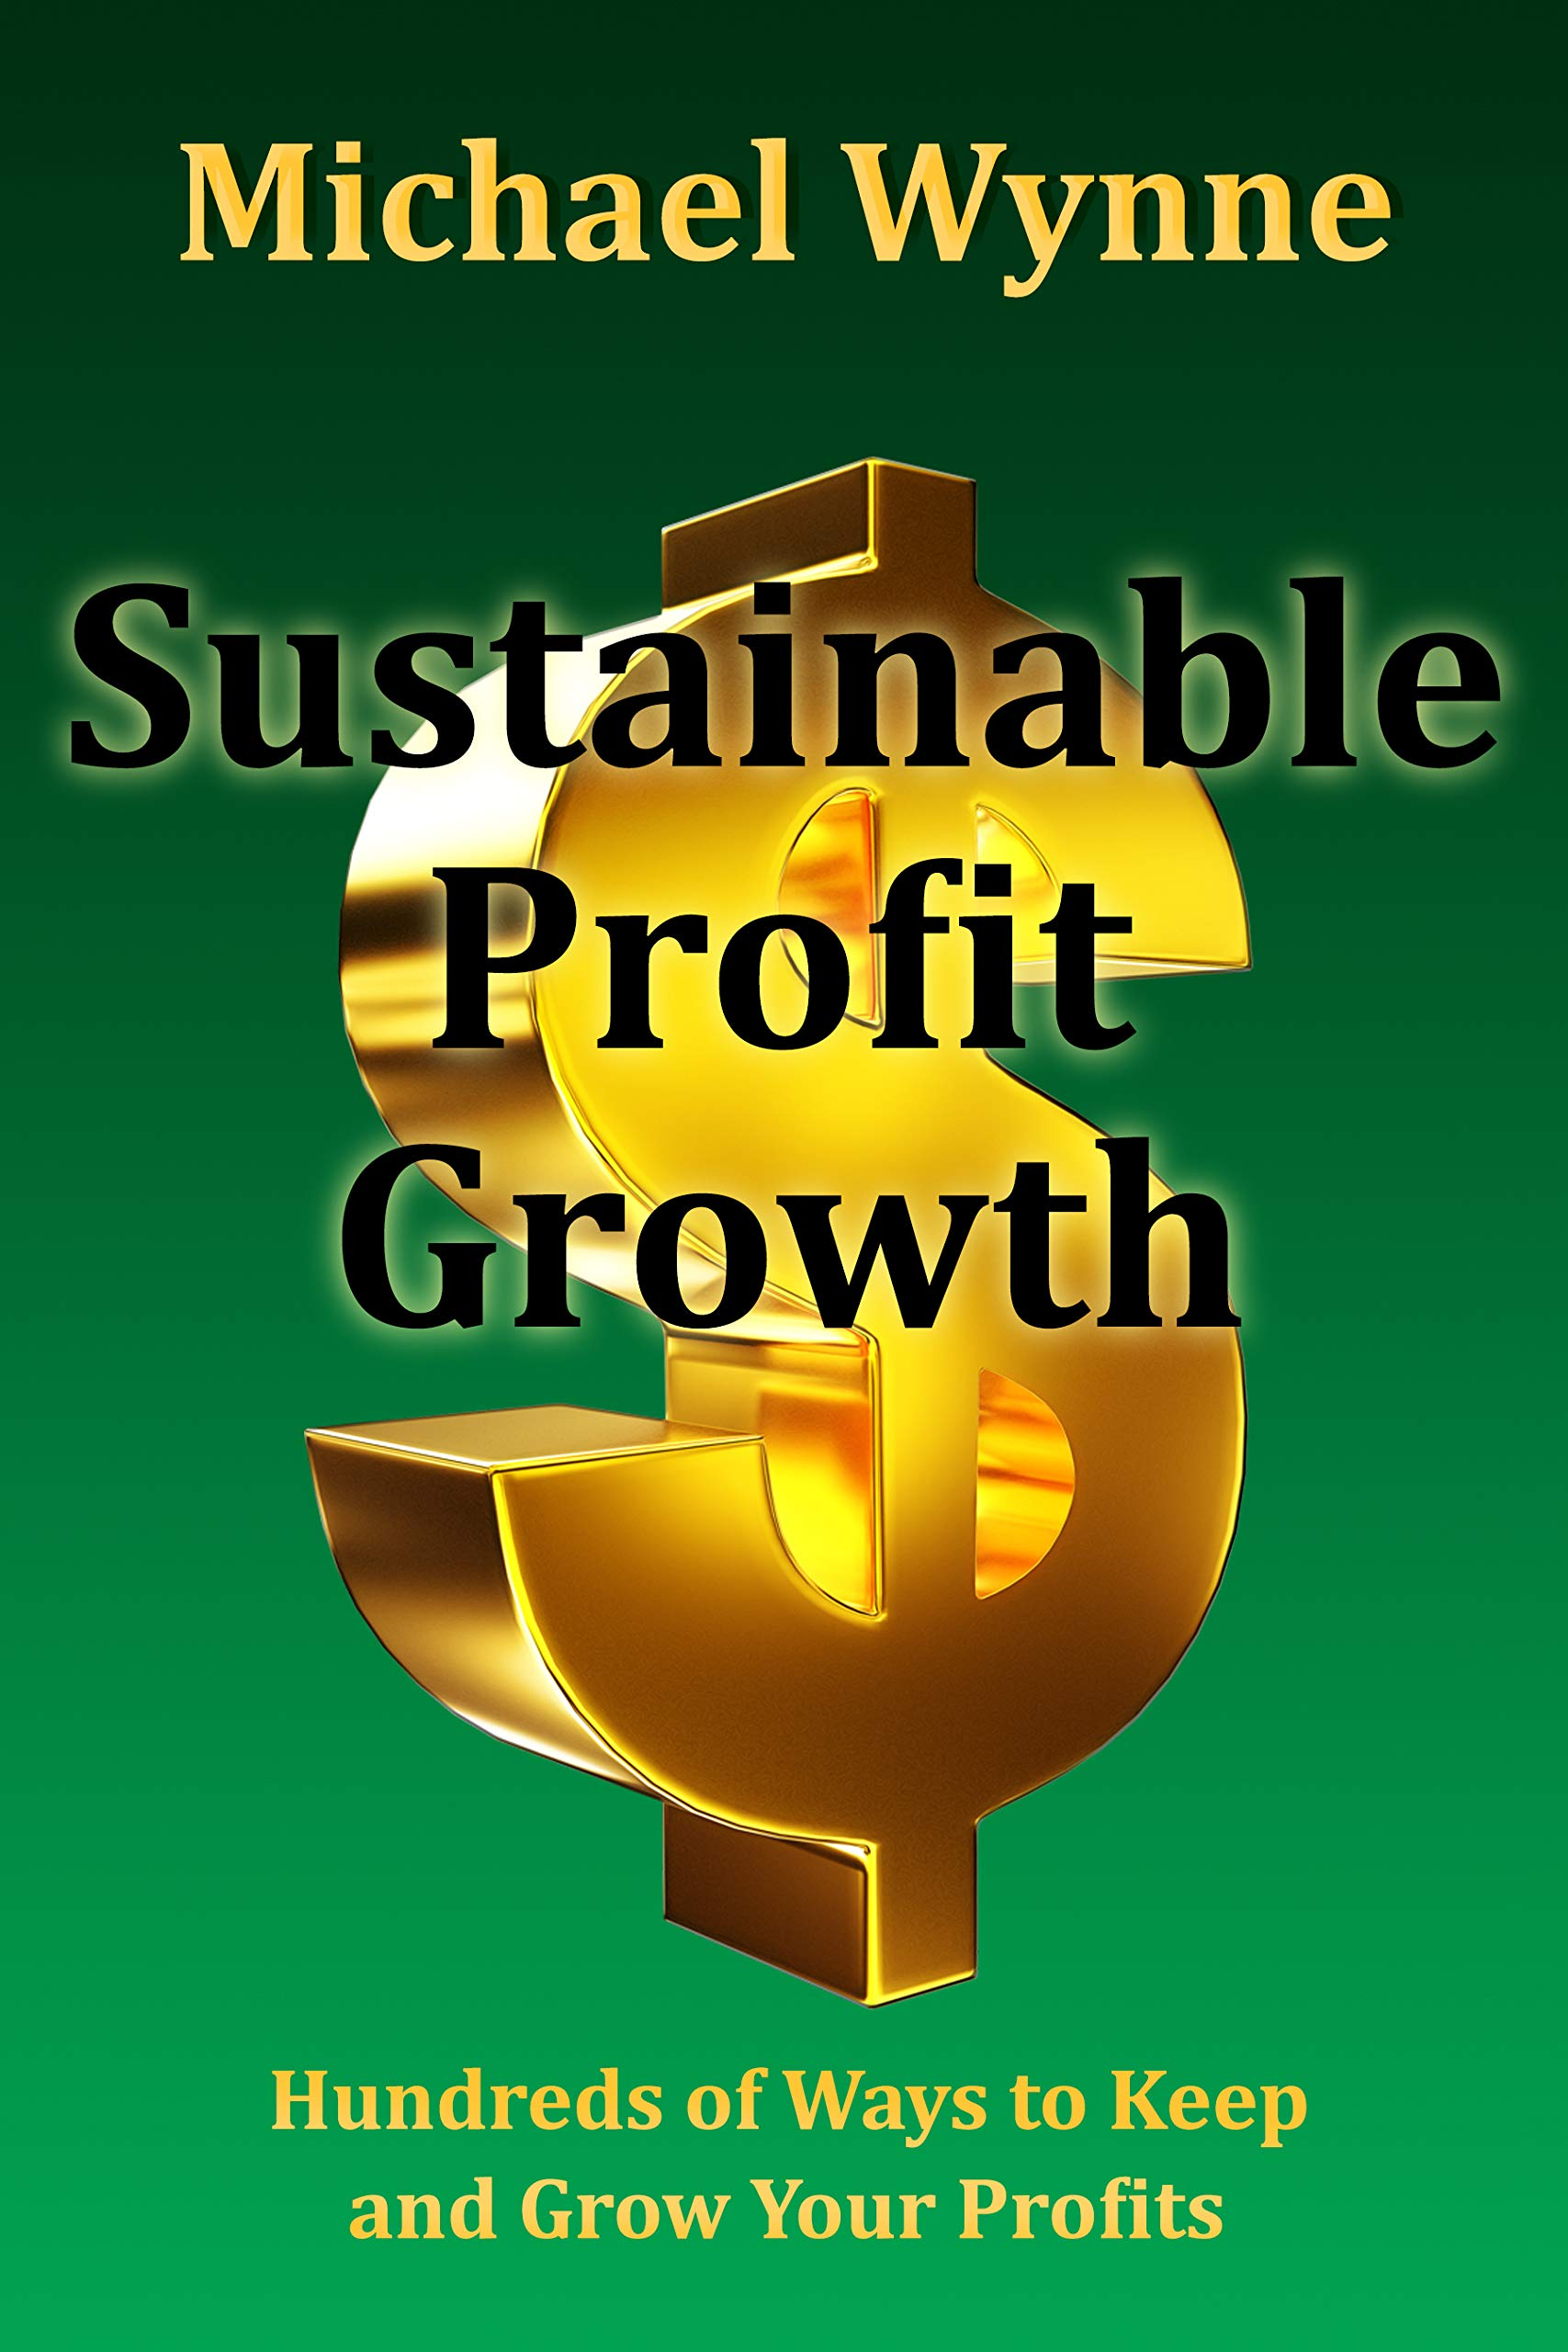 Sustainable Profit Growth: Hundreds of Ways to Keep and Grow Your Profits